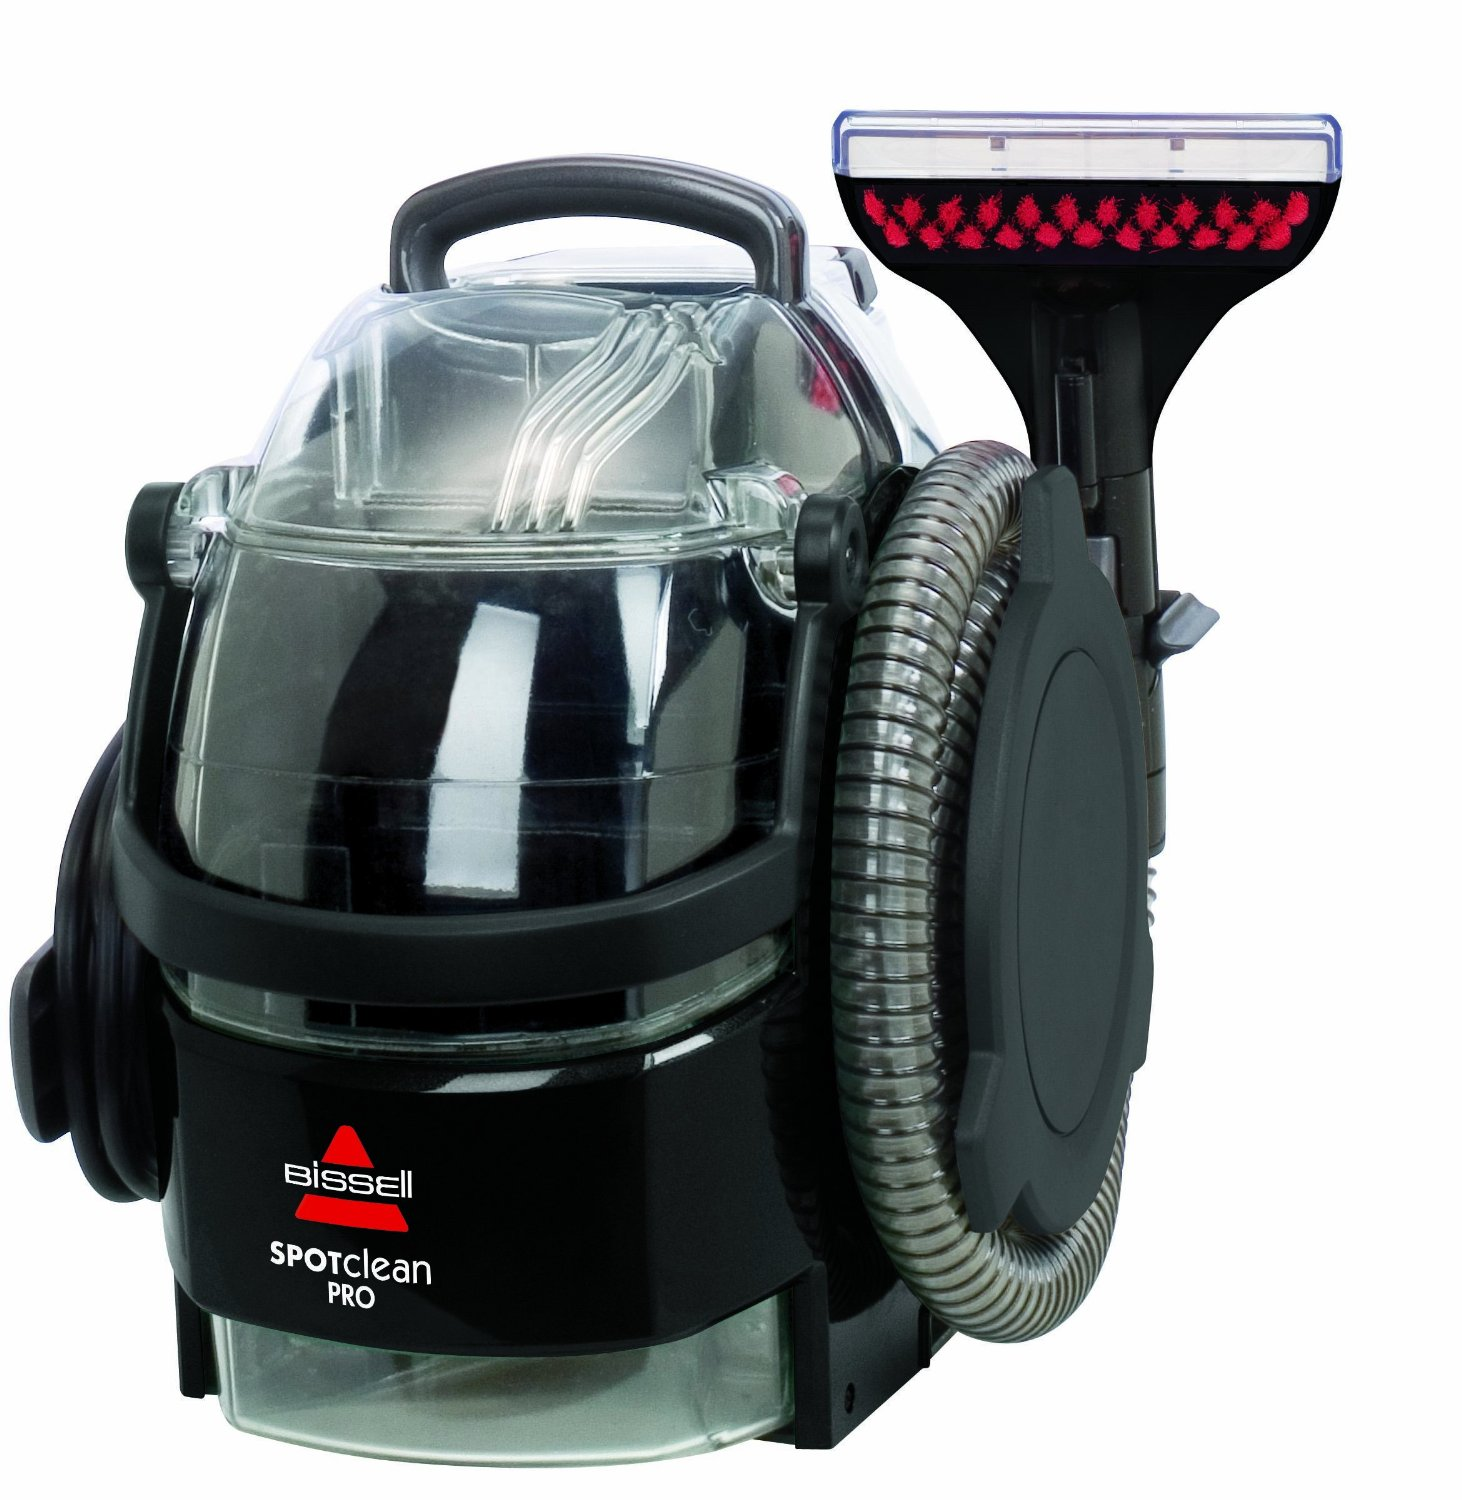 Bissell 3624 SpotClean Professional Portable Carpet Clean...